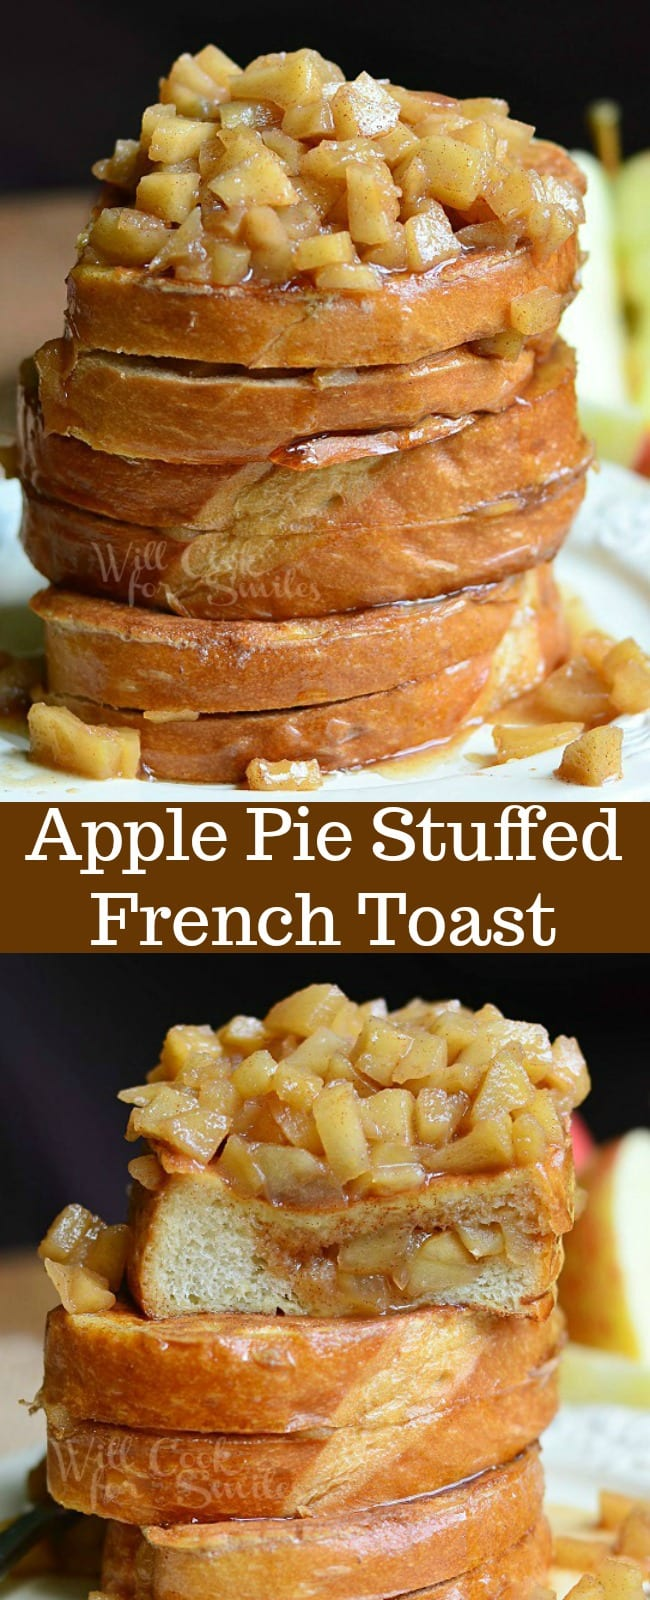 Apple Pie Stuffed French Toast Recipe. This Stuffed French Toast is topped and filled with an easy homemade apple pie filling. #frenchtoast #breakfast #brunch #applepie #apple #topping